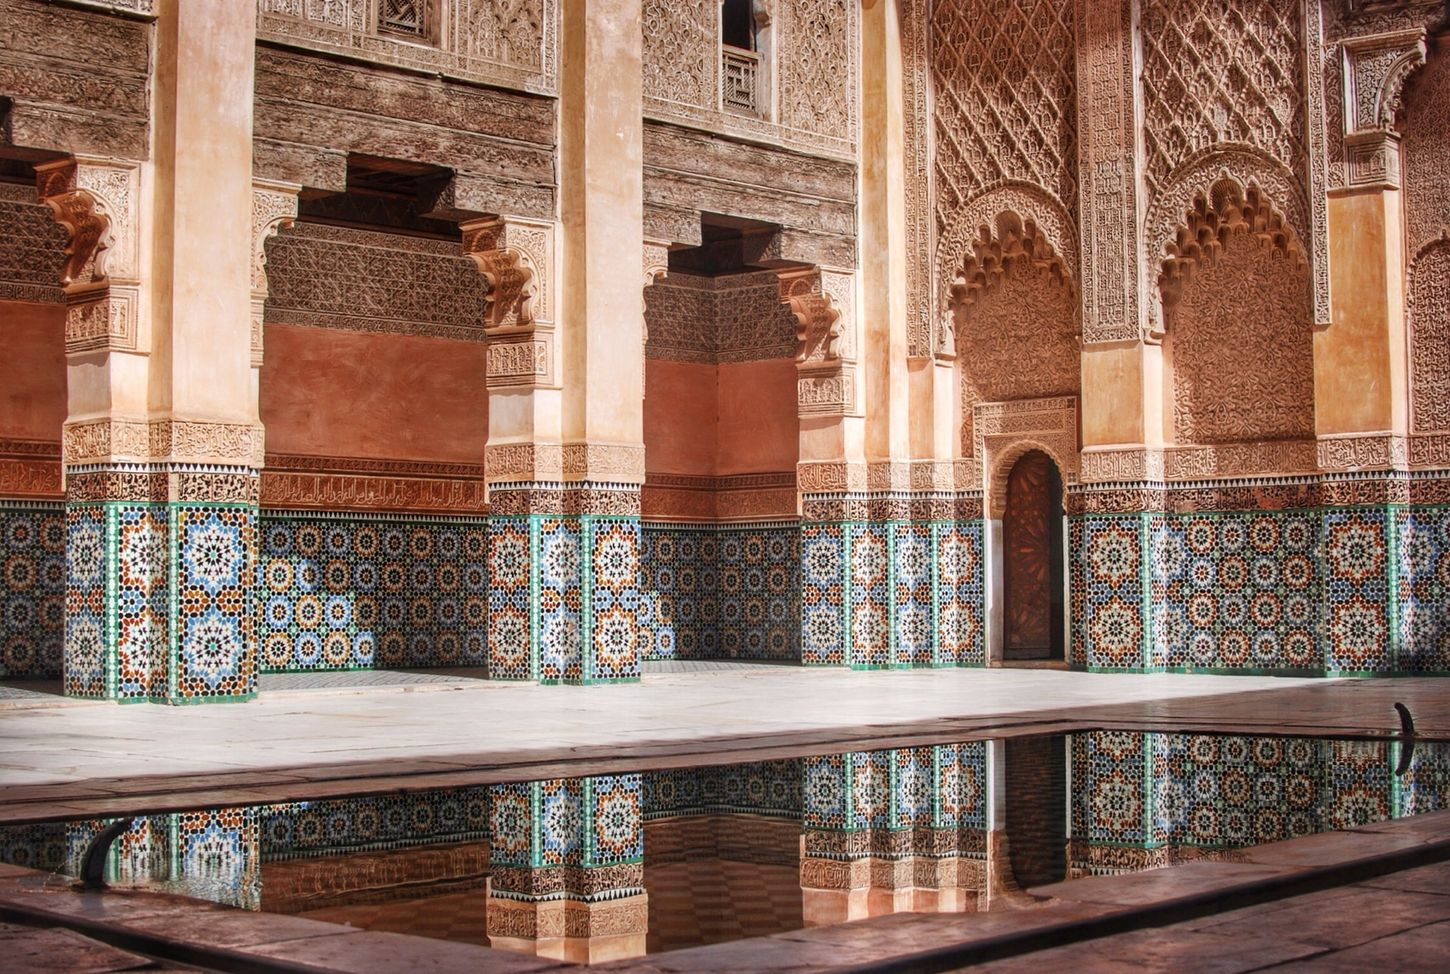 Medersa Ben Youssef, Marrakech, Morocco Time To Reflect Traveling Architecture Tadaa Community